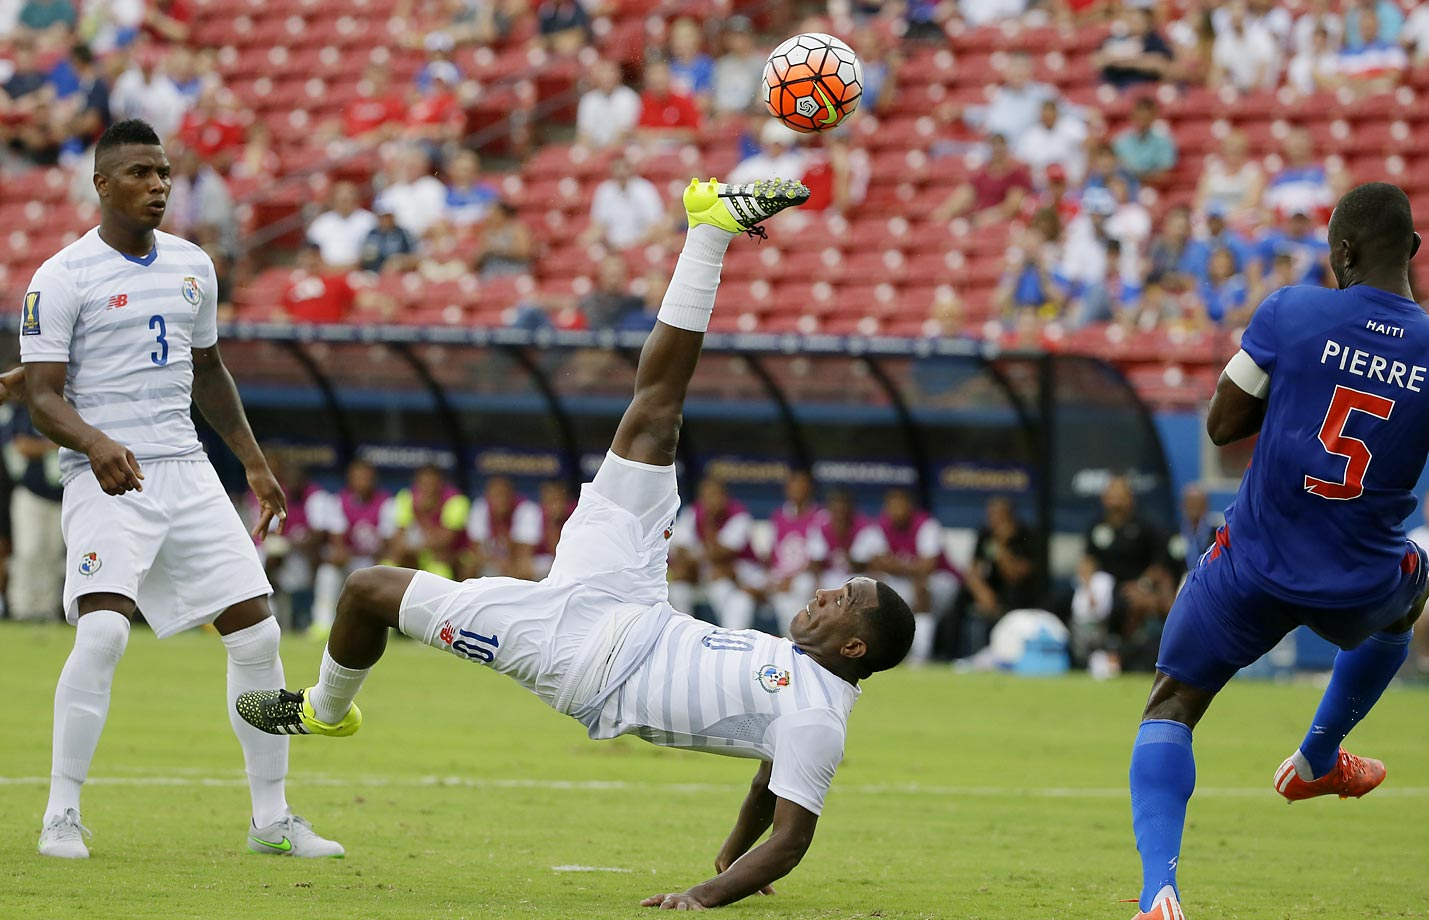 Luis Tejada of Panama takes a shot against Haiti during the CONCACAF Gold Cup soccer match in Frisco, Texas.